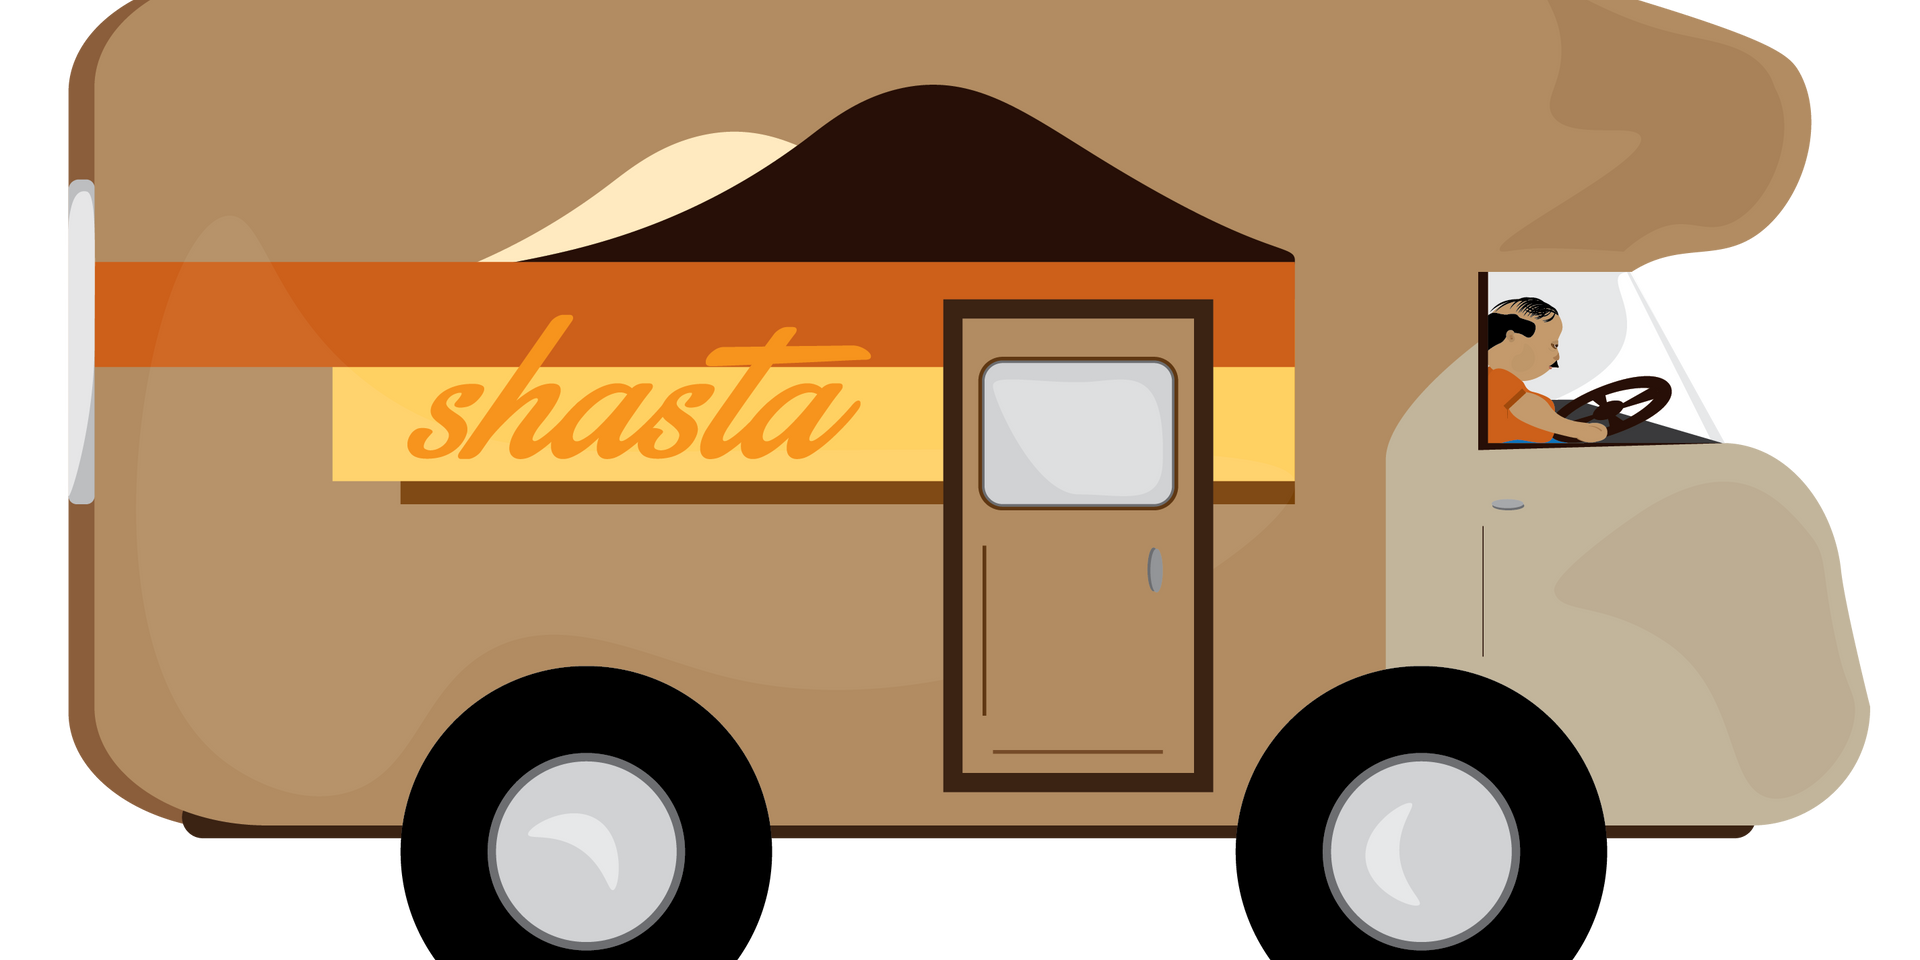 Shasta RV Illustration